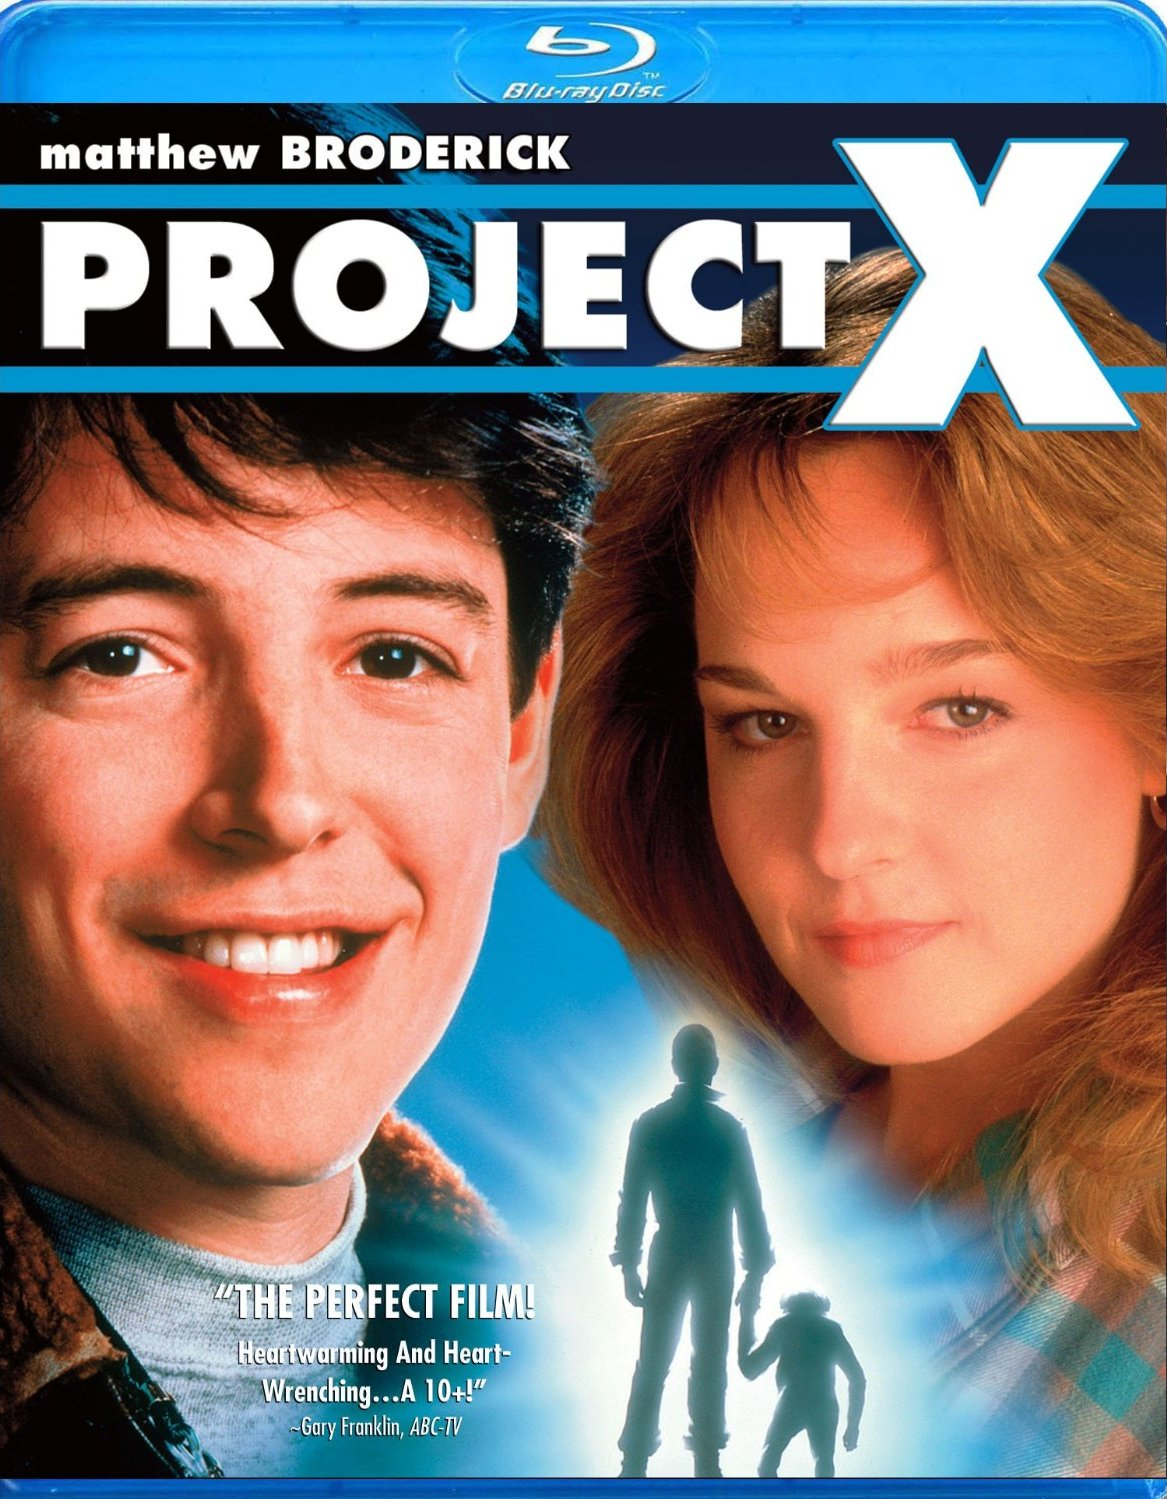 Project X (1987)